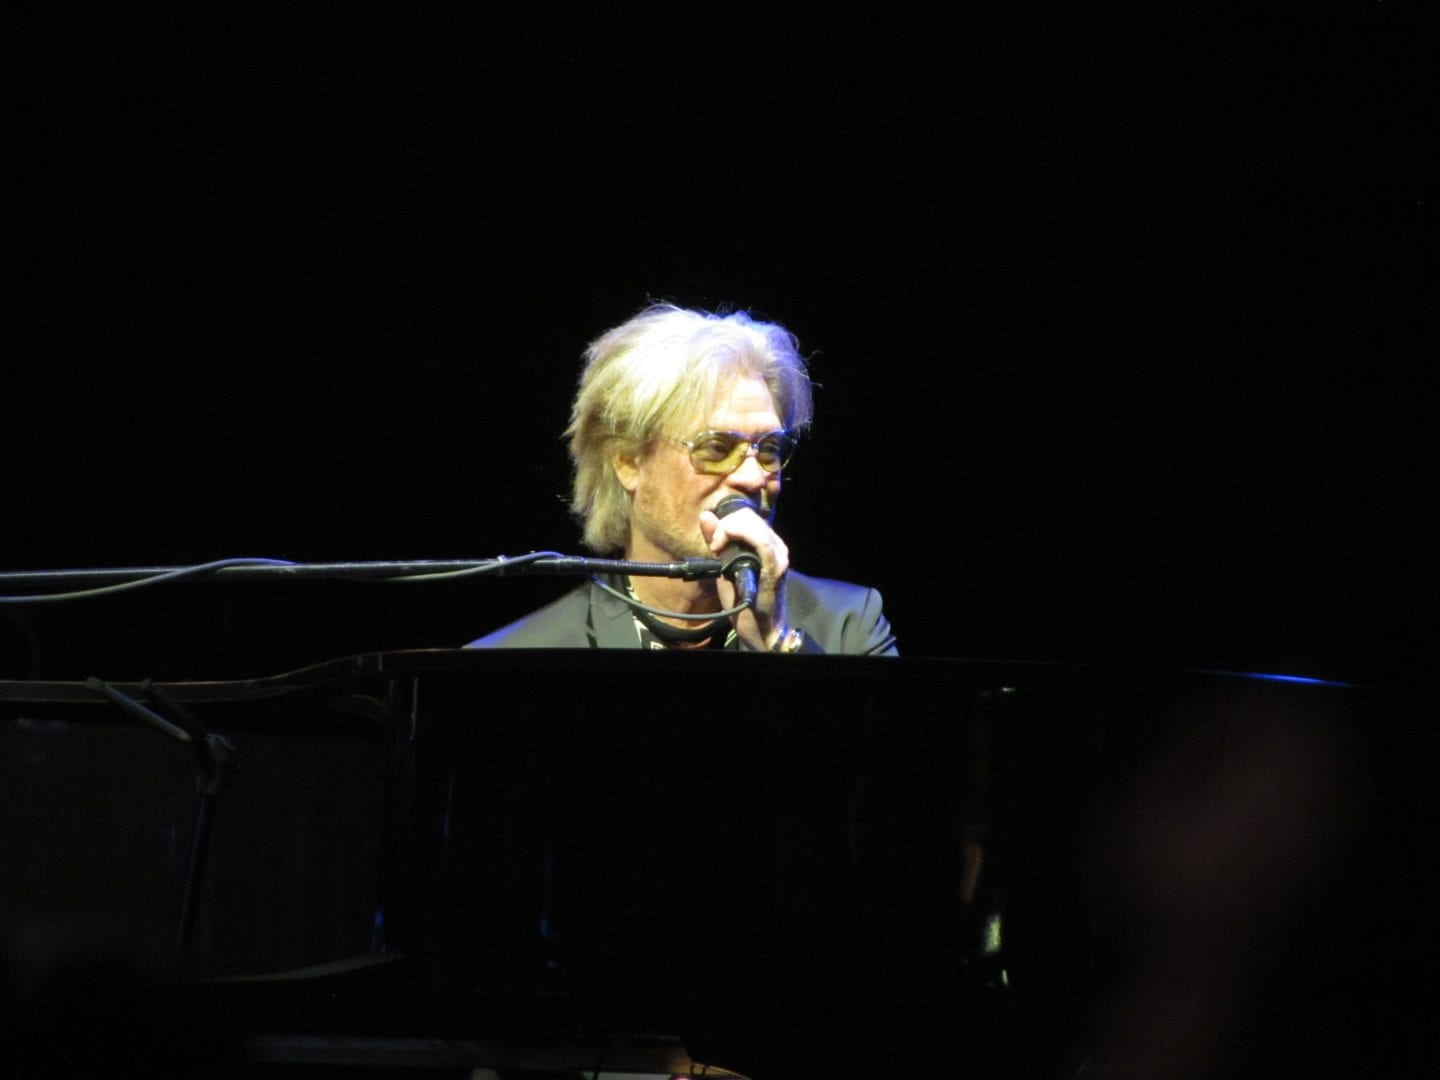 Daryl Hall singing a song while playing the keyboard